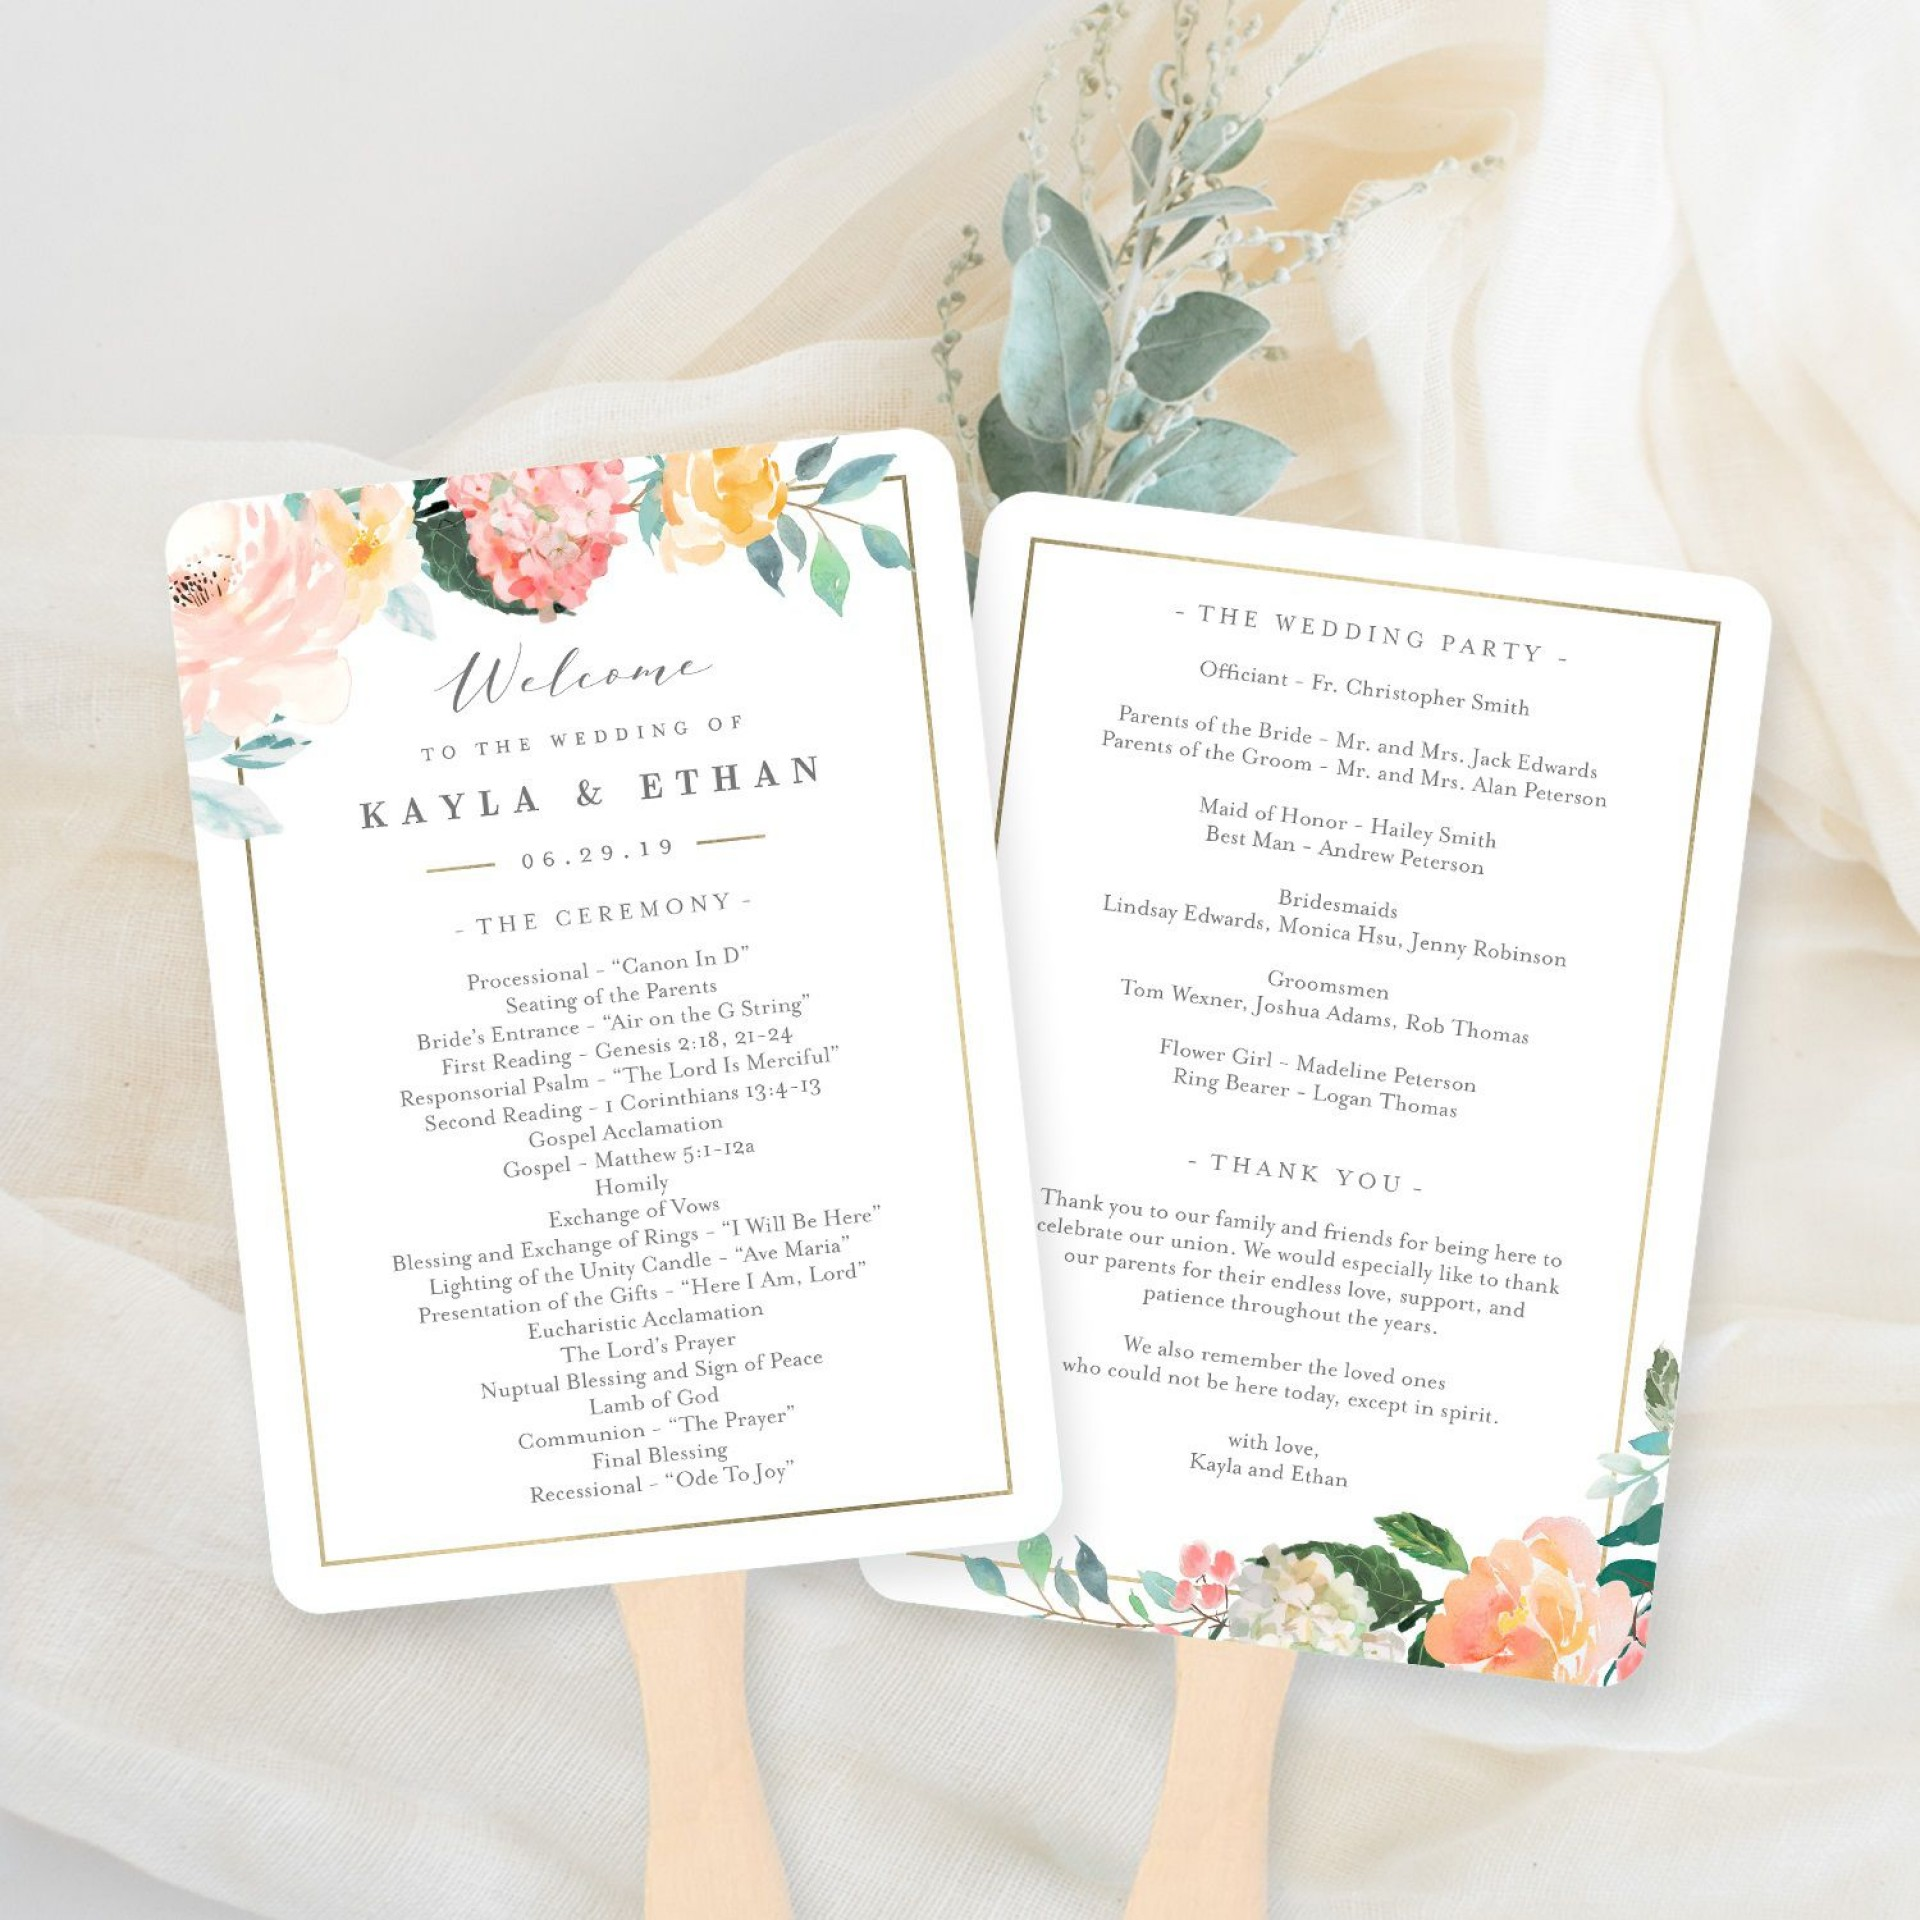 009 Unforgettable Wedding Program Fan Template Inspiration  Free Word Paddle Downloadable That Can Be Printed1920